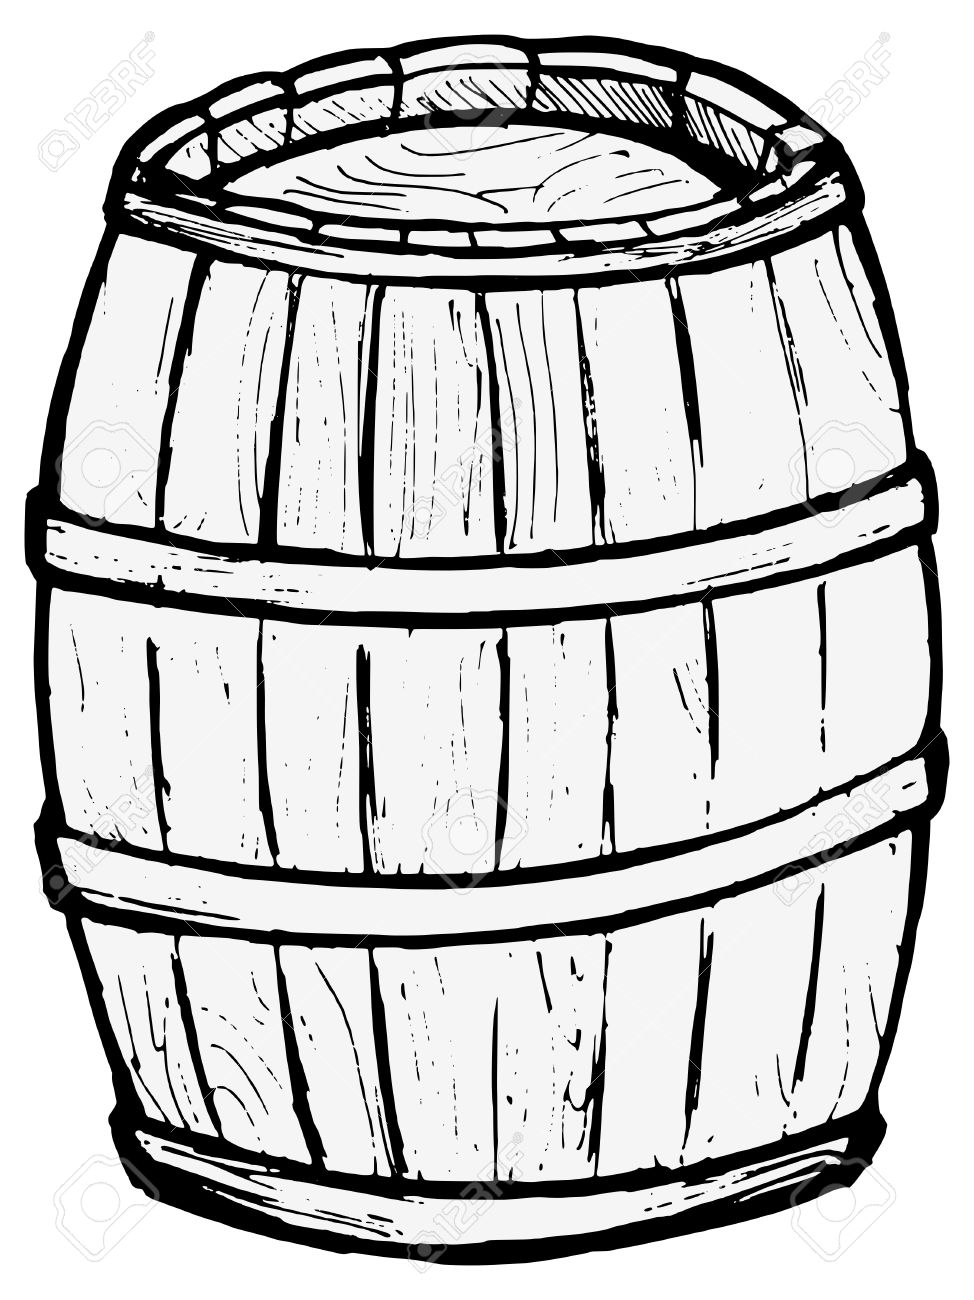 974x1300 Old Wooden Barrel On The White Background Royalty Free Cliparts